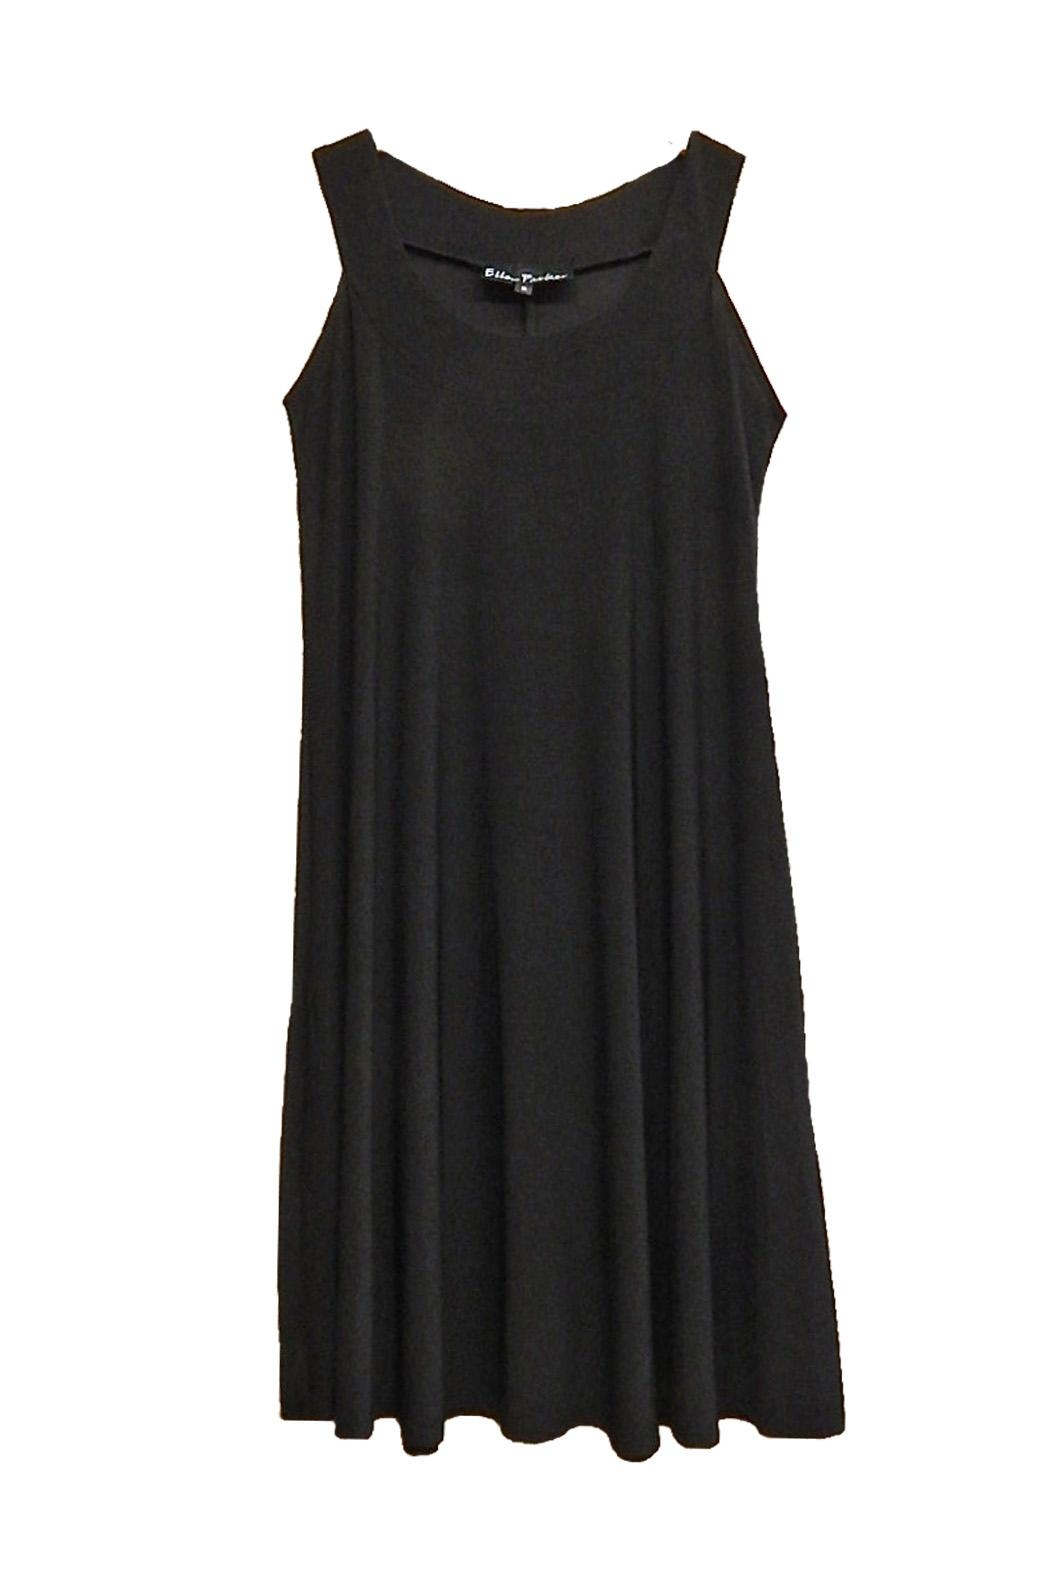 Ellen Parker Black Sleeveless Dress - Front Cropped Image